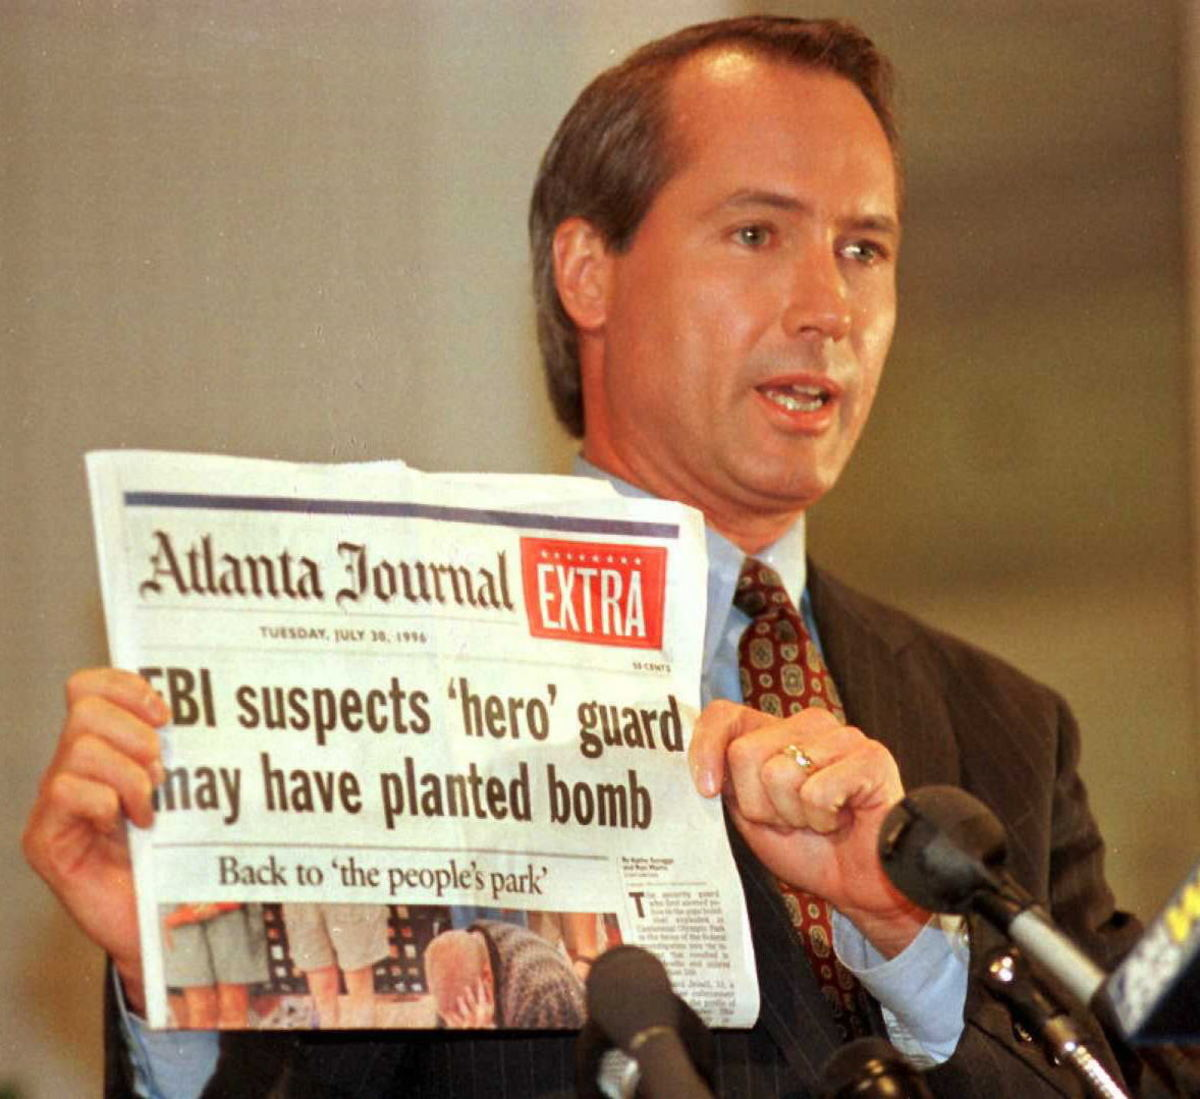 Richard Jewell's attorney Lin Wood holds a copy of the Atlanta Journal during a press conference on October 28, 1996, in Atlanta, Georgia